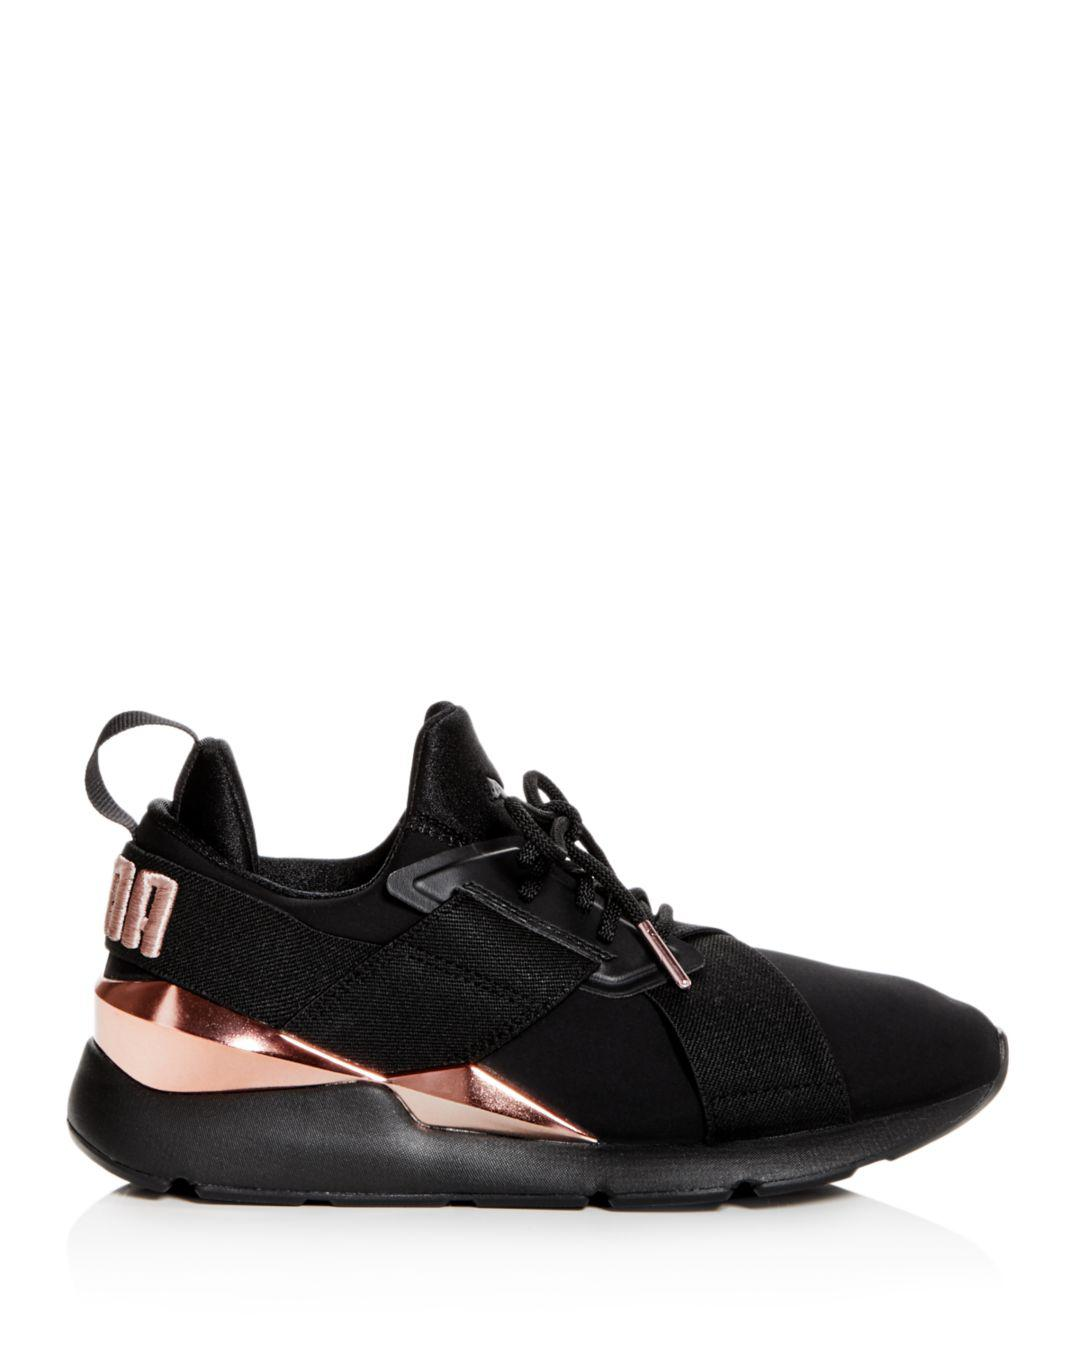 a808a4f0e700 Puma Women s Muse Low-top Sneakers in Black - Lyst